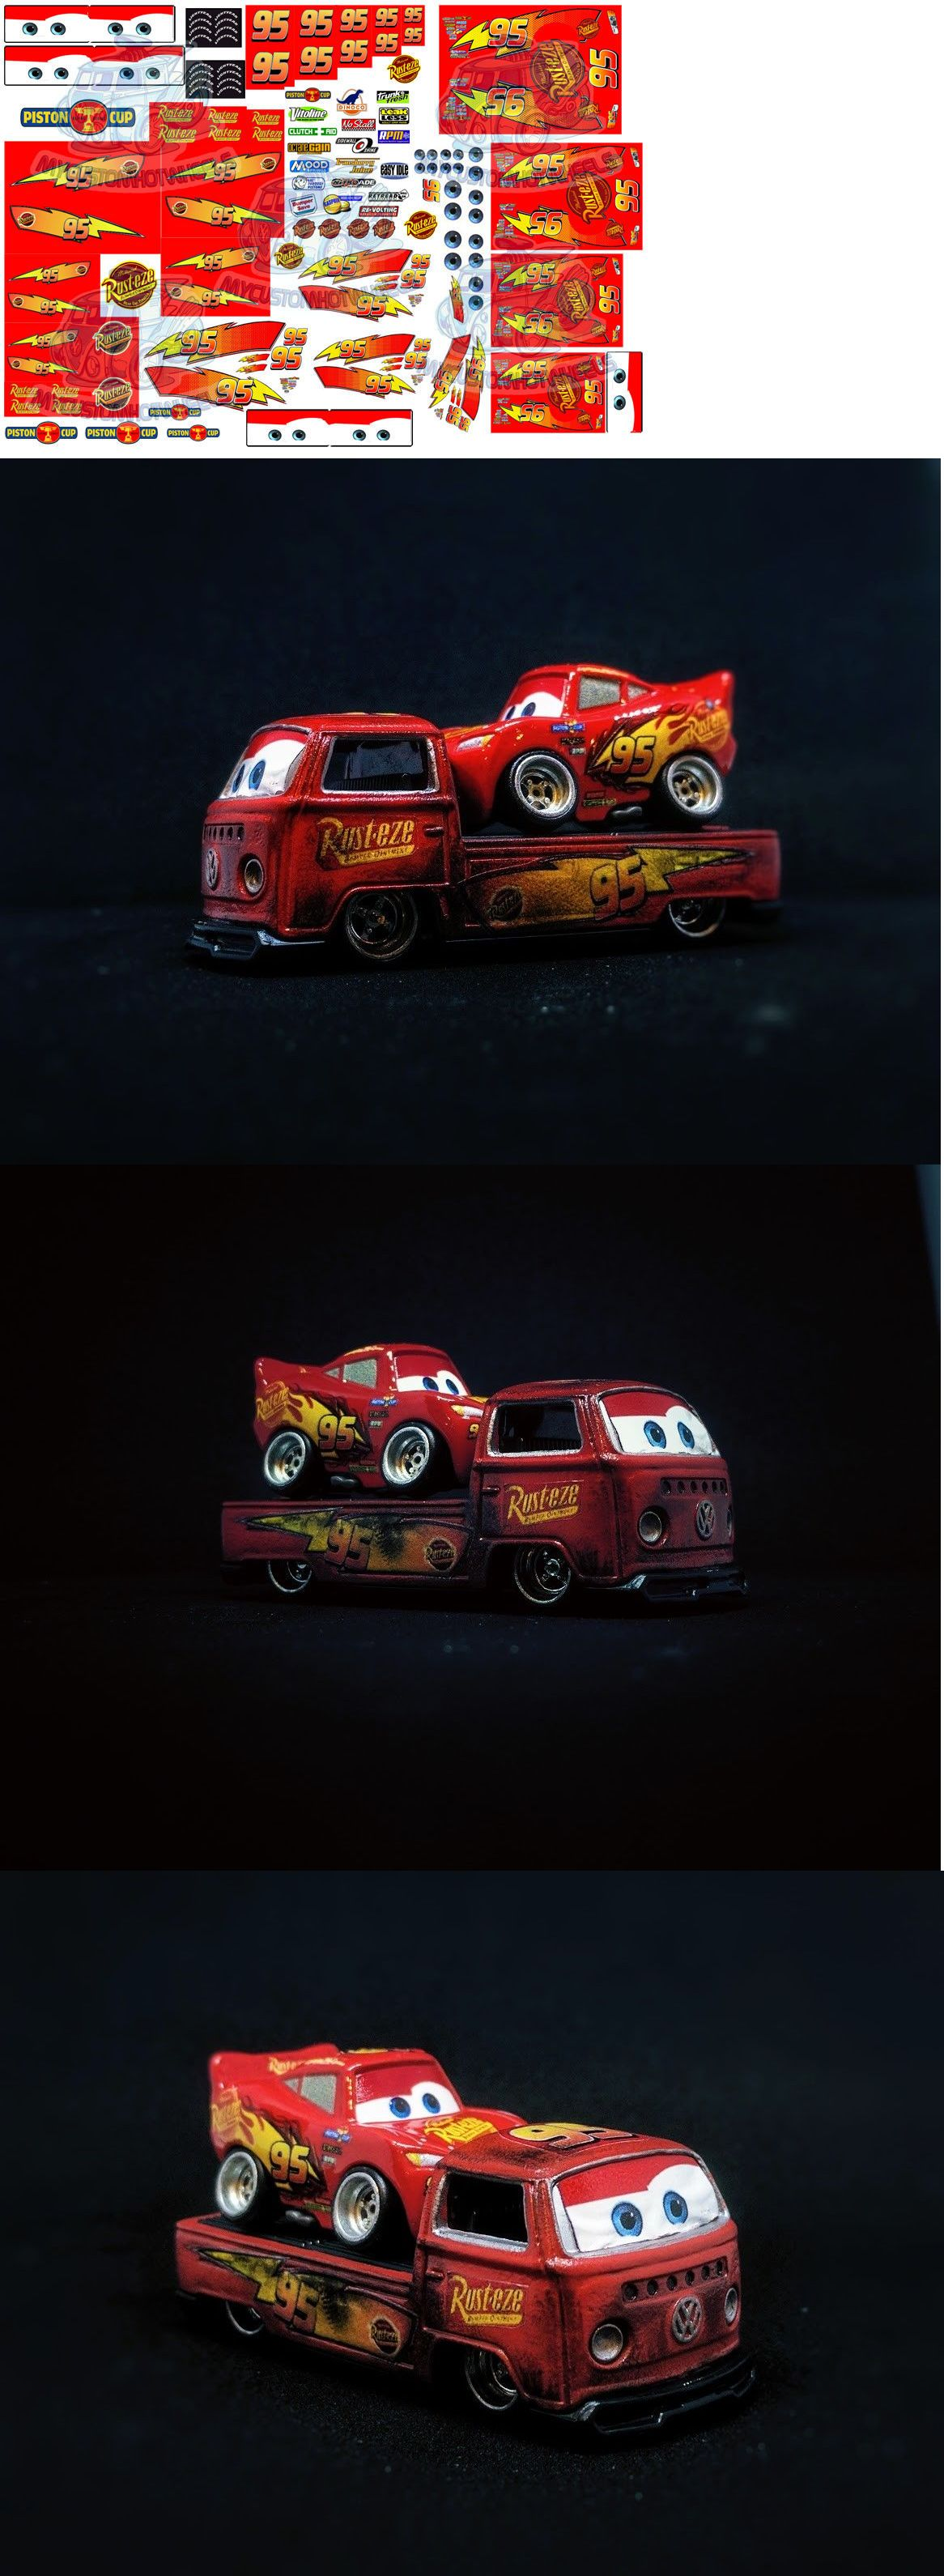 Lightning Mcqueen Decals Cars Movie Waterslide Decals In All Popular Scales Cars Movie Custom Car Decals Lightning Mcqueen [ 3181 x 1166 Pixel ]